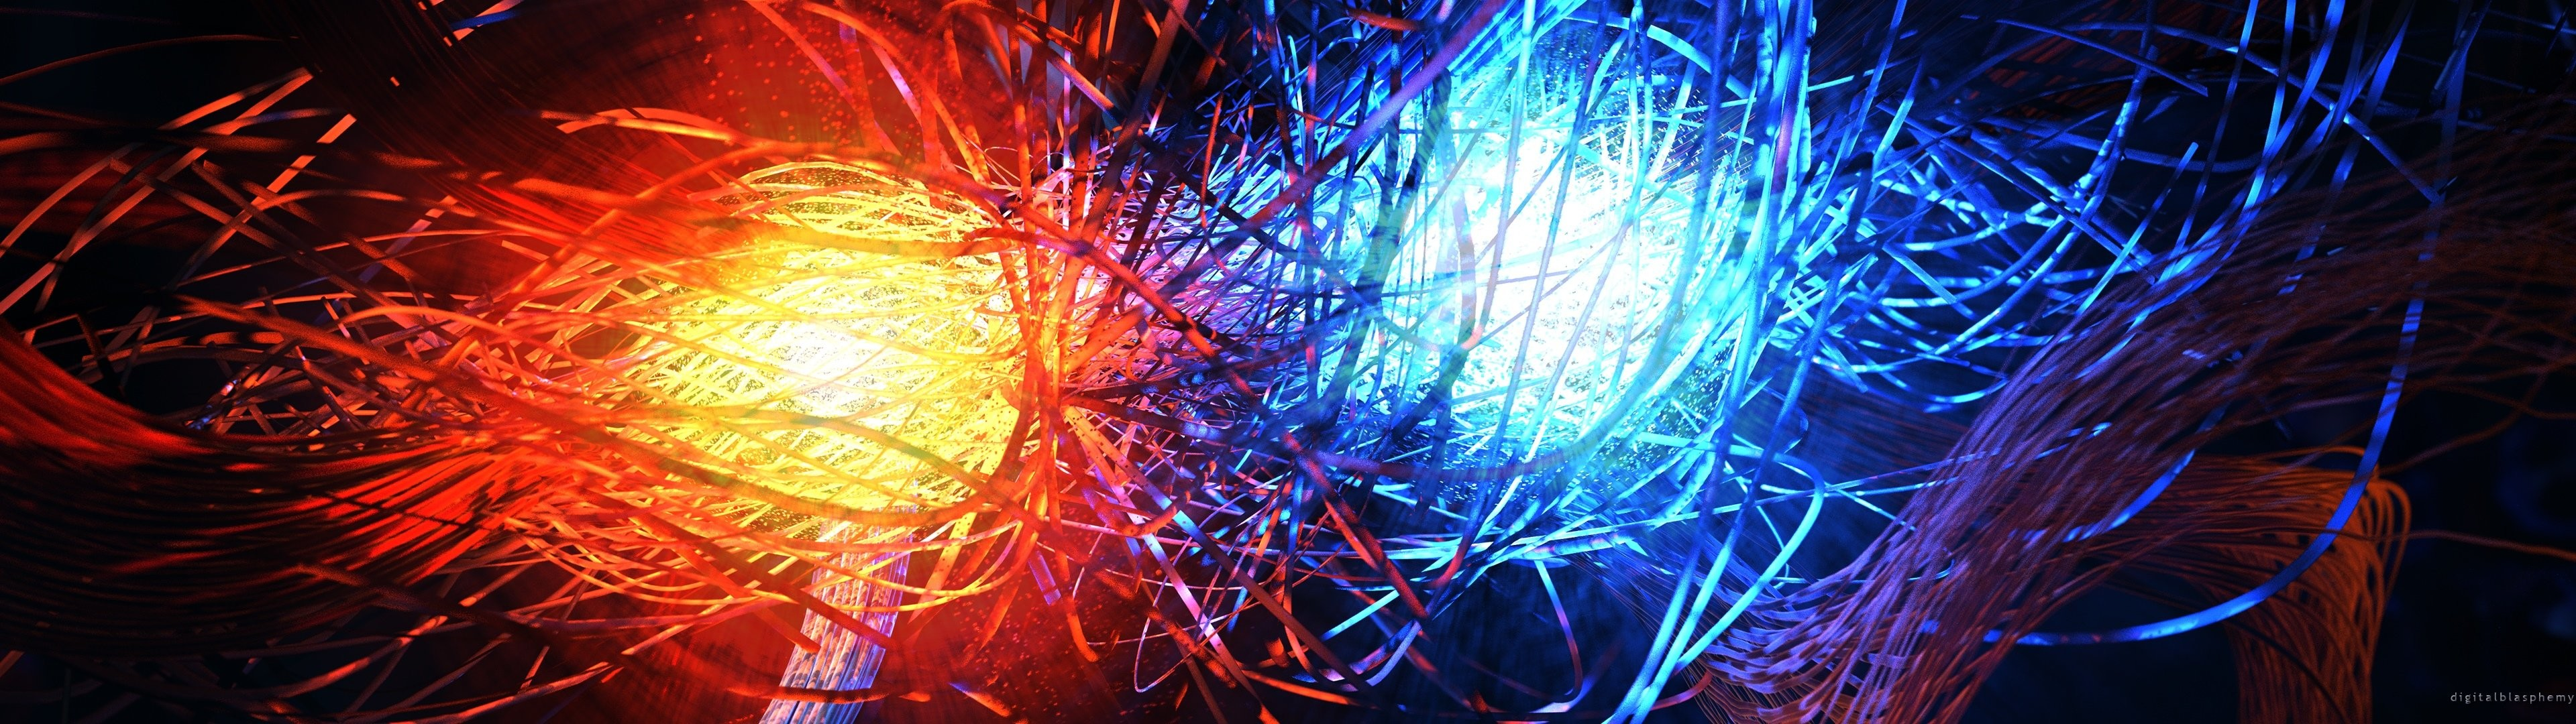 Dual monitor screen multi multiple abstract wallpaper | | 514408  | WallpaperUP